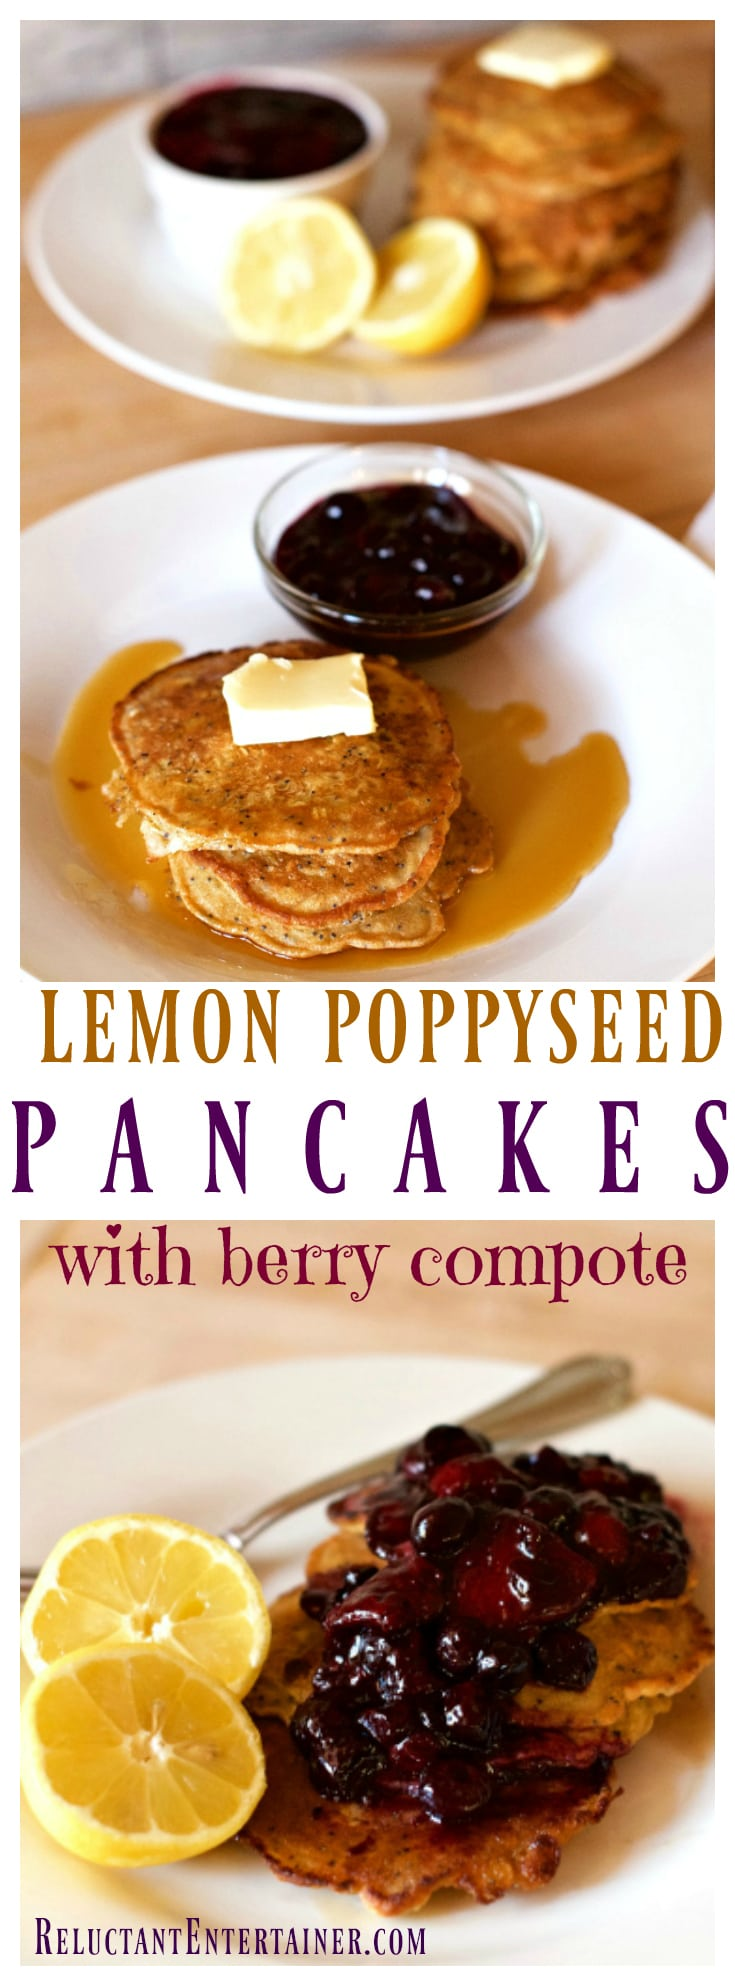 Lemon Poppyseed Pancakes with Berry Compote, the perfect breakfast for out-of-town company, made with frozen berries!